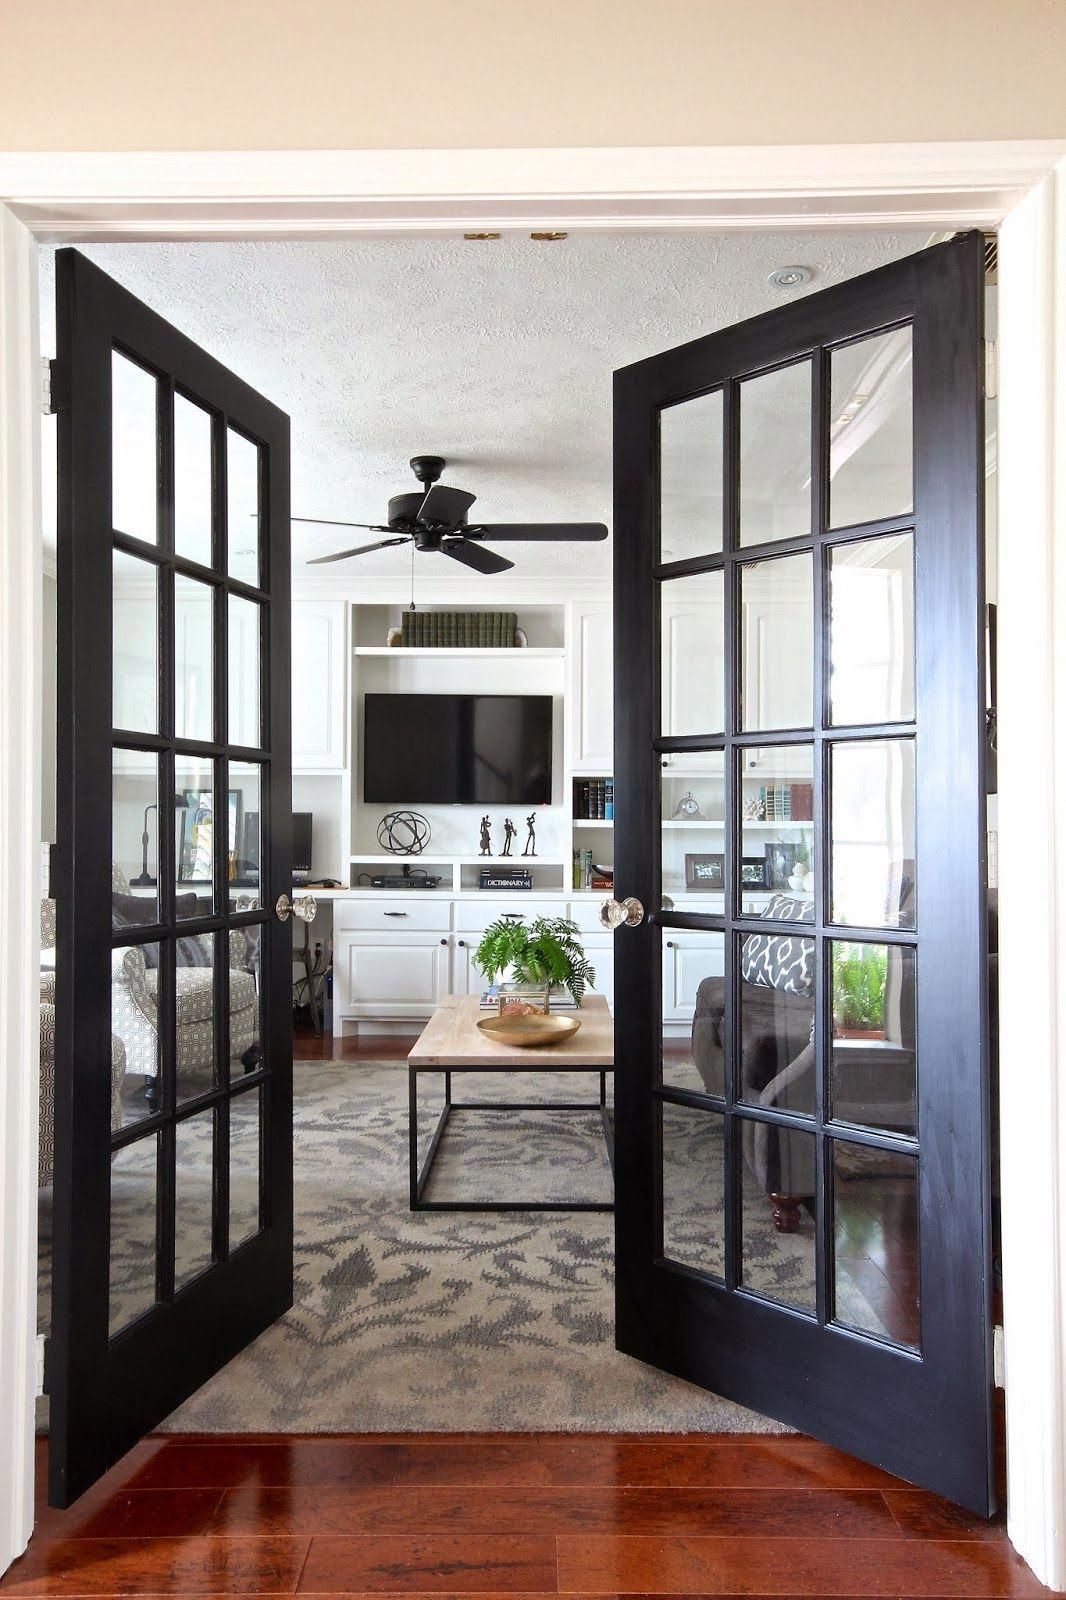 Exterior French Doors Prehung Interior French Doors With Frosted Glass Pantry Door Replacement 20 French Doors Interior Glass Doors Interior Doors Interior